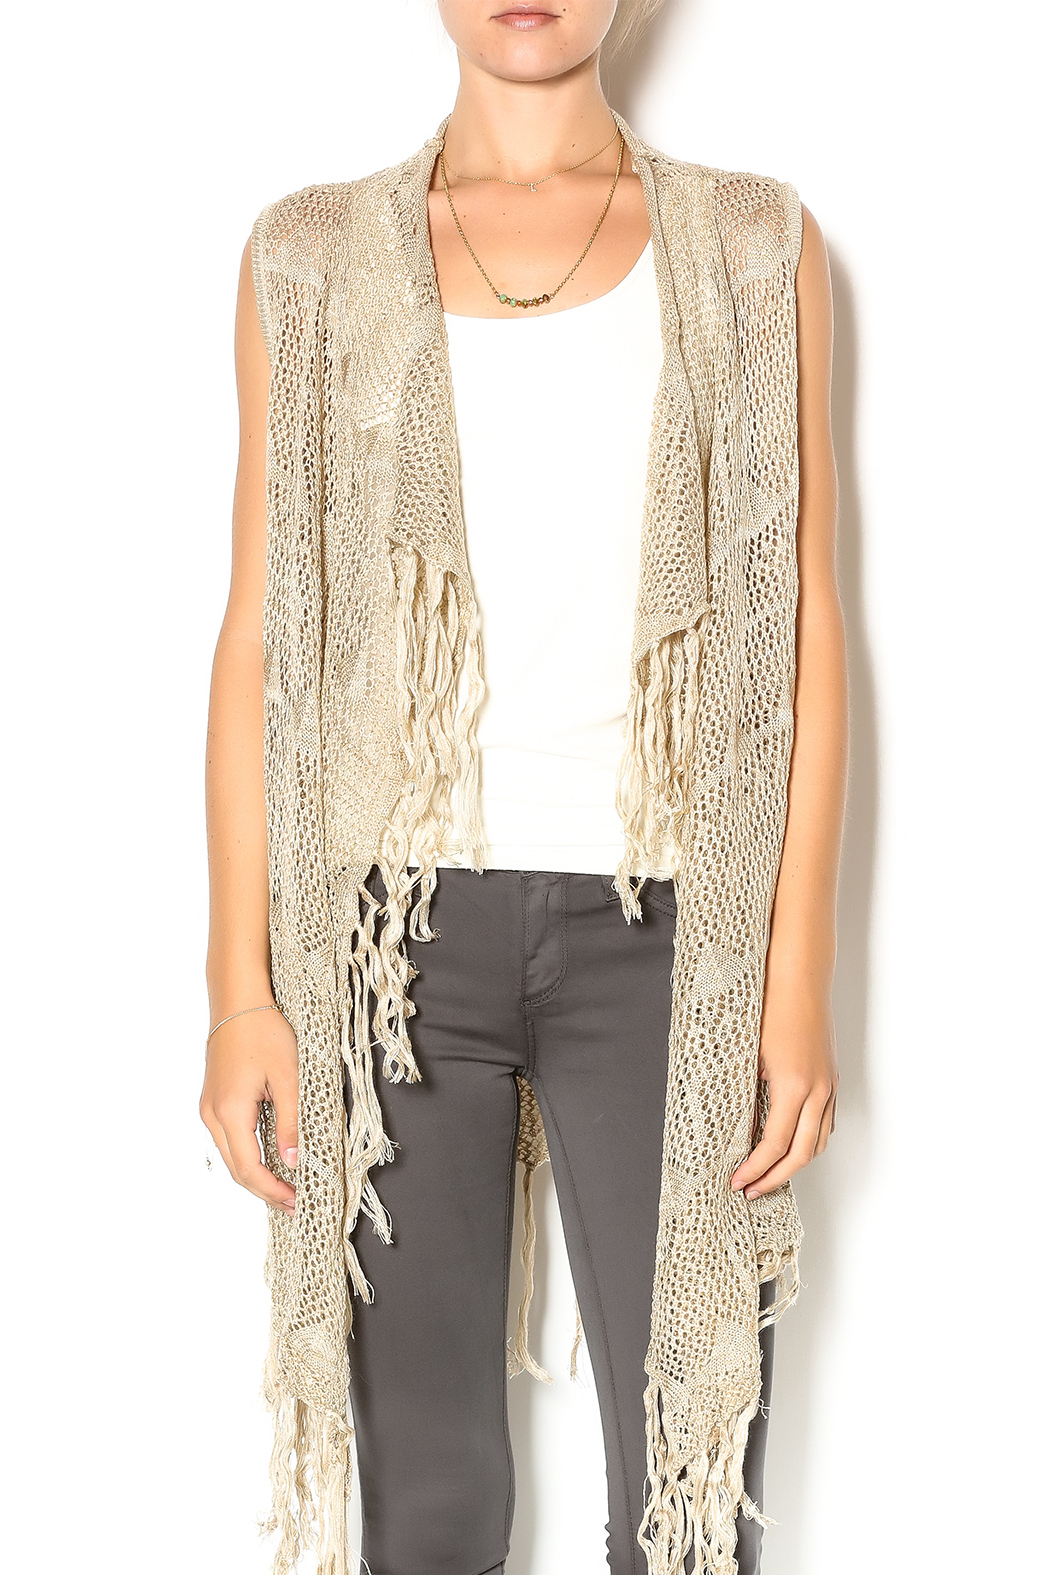 Joh Crochet Fringe Vest From Palm Beach By Glitz And Glam Boutique